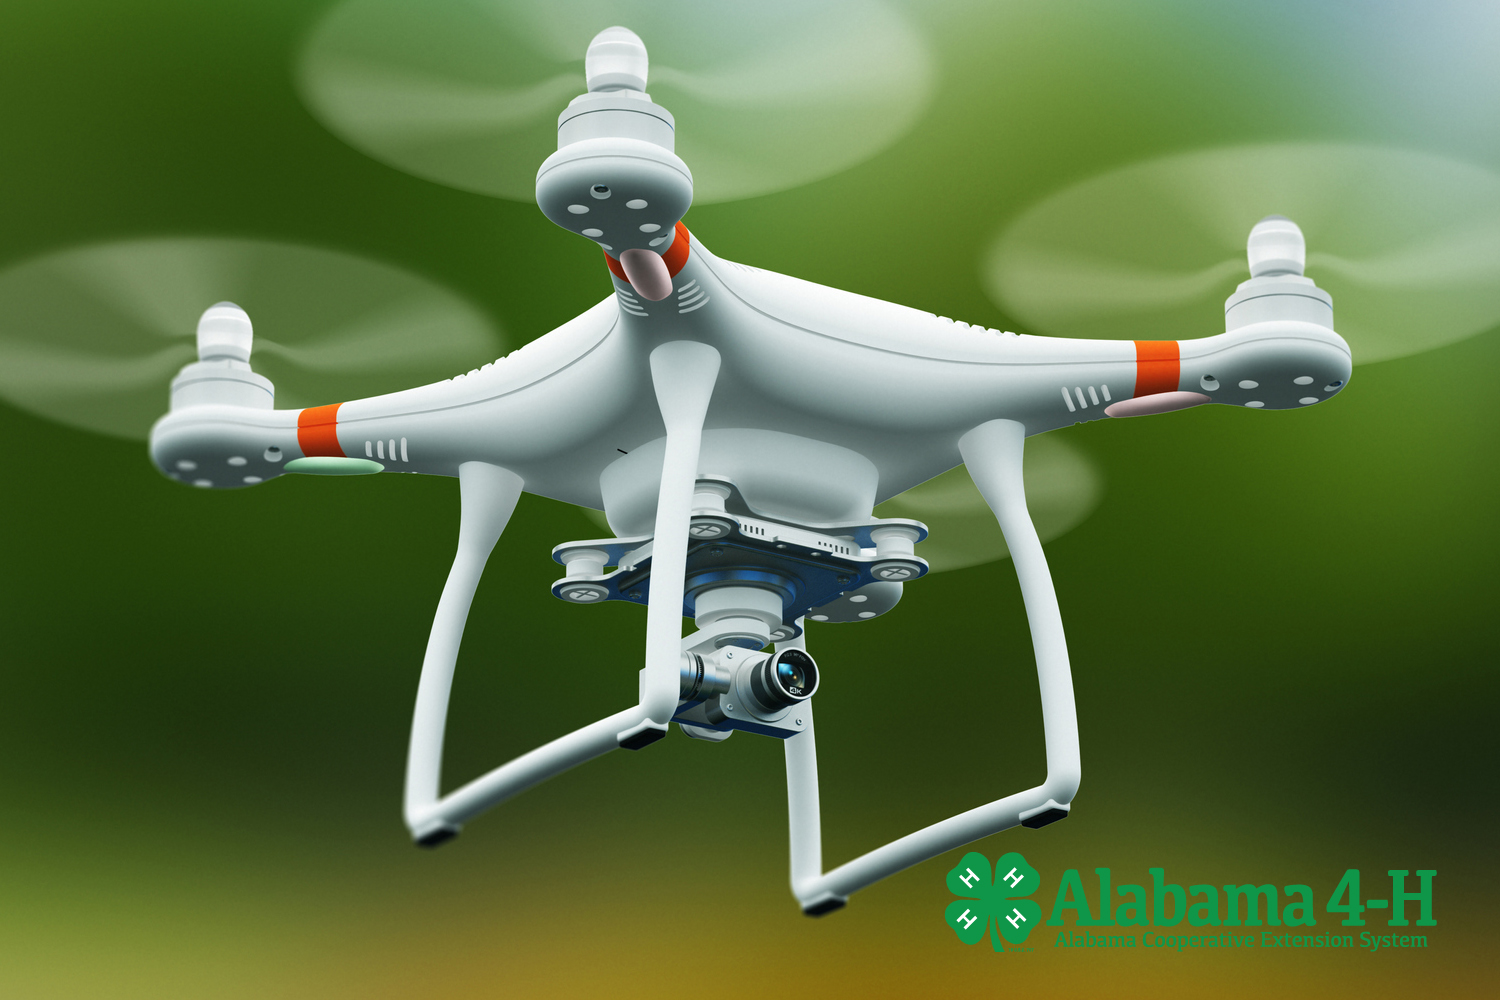 Alabama 4-H drones discovery program; drone in air